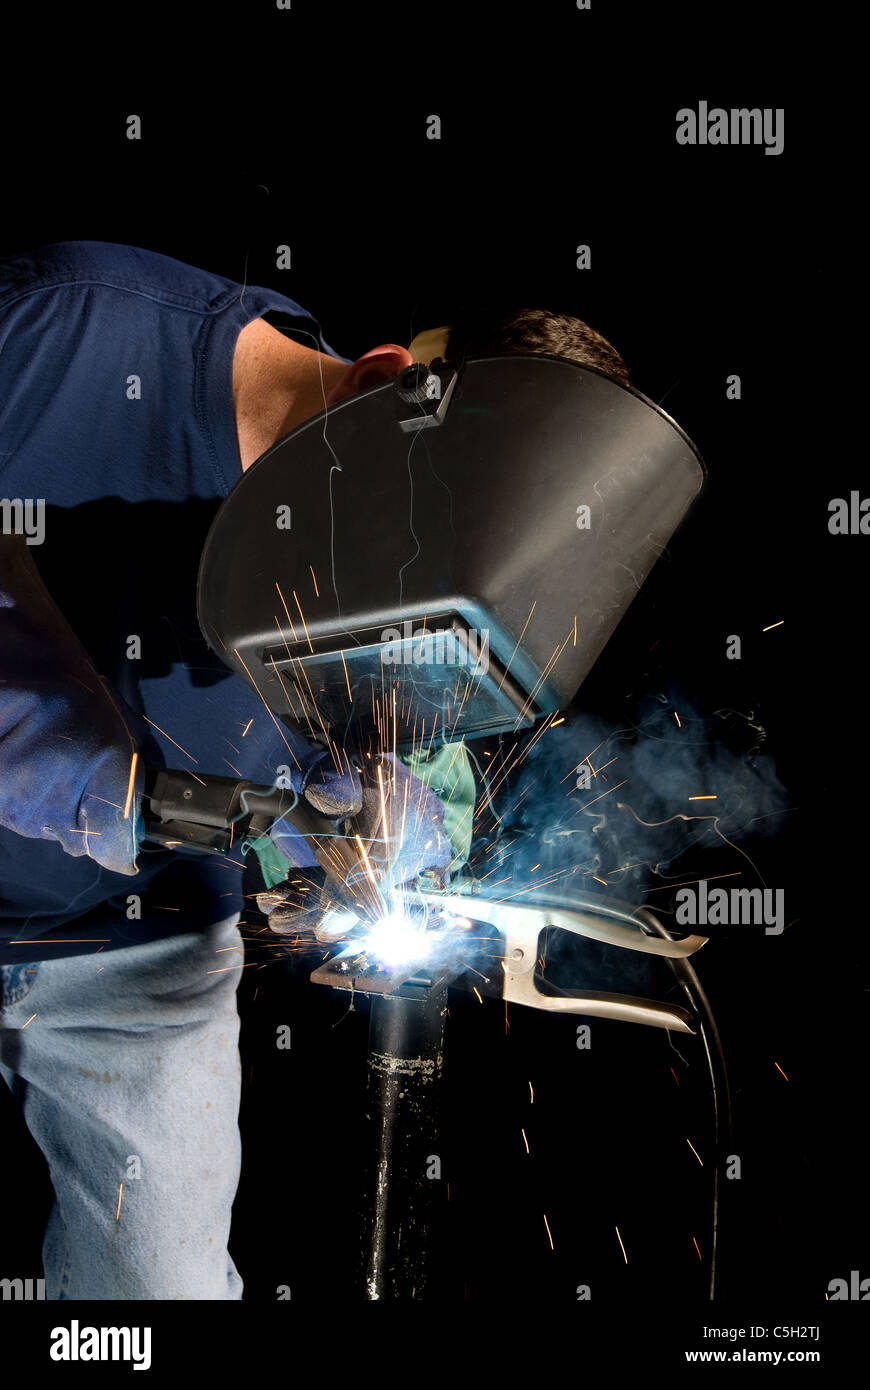 A welder fabricates a tool by attaching two pieces of metal. - Stock Image